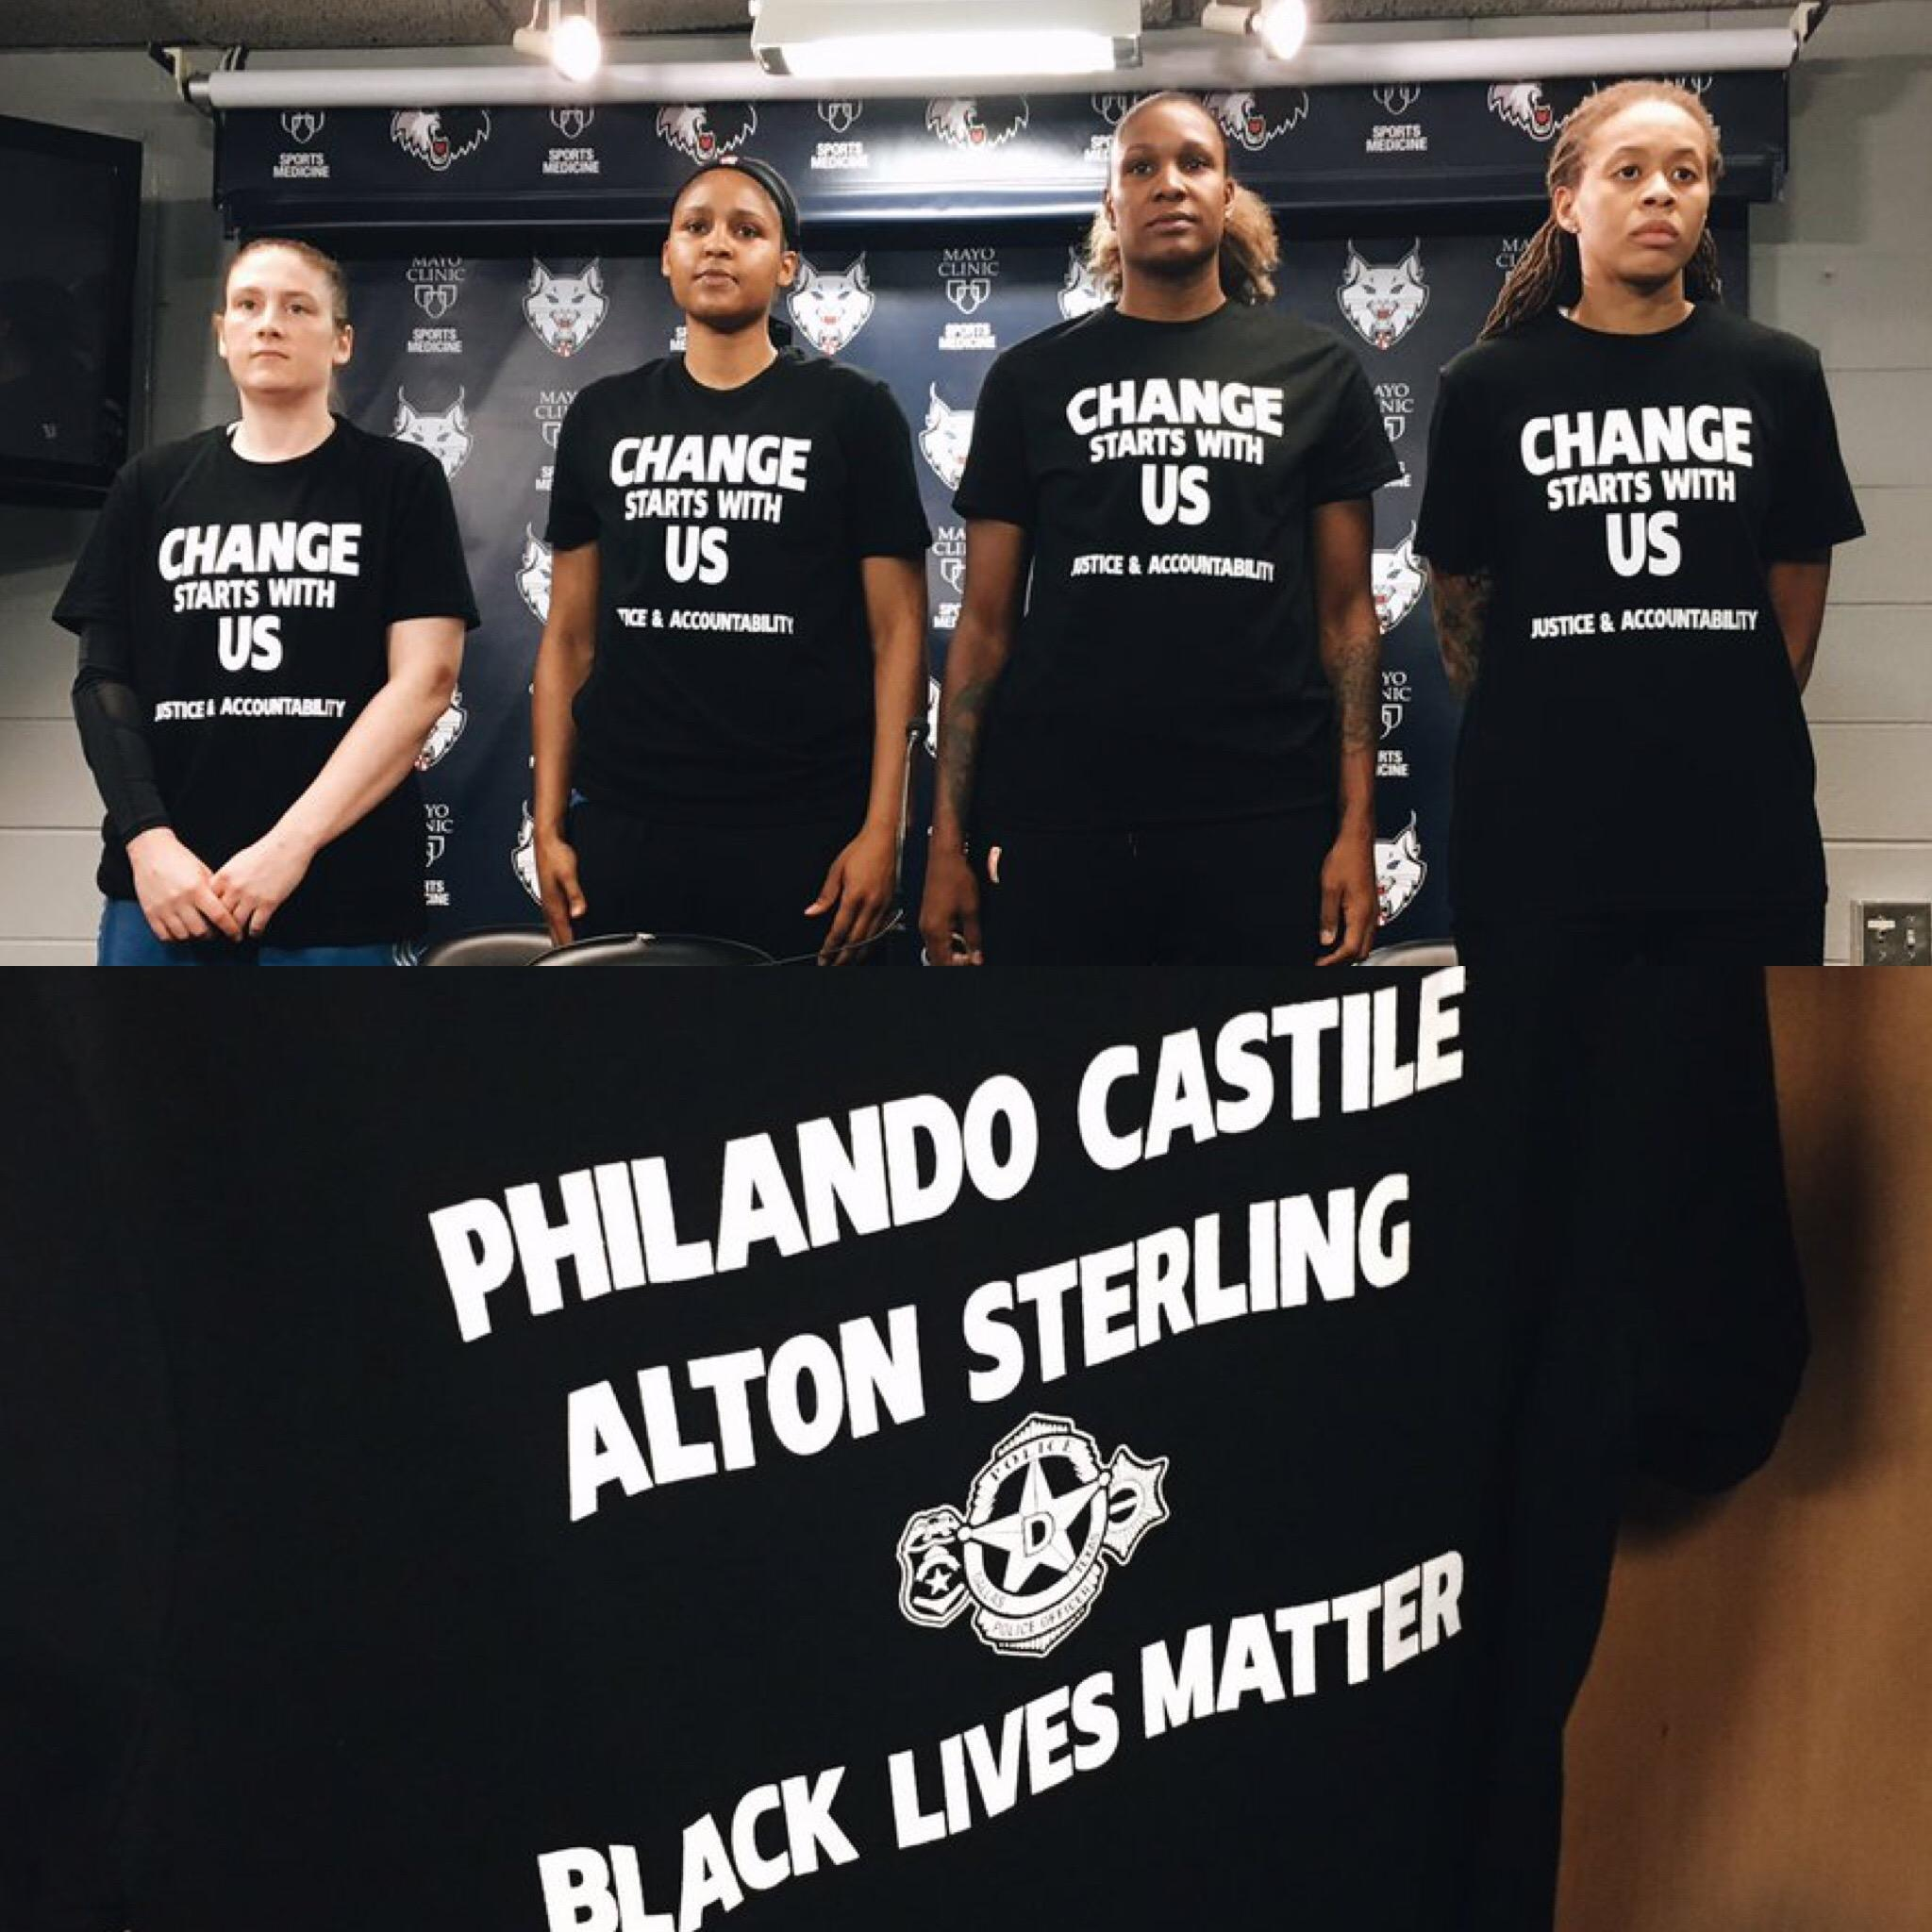 Lynx players wear warm-up shirts to honor victims of the shootings from this past week. (via @minnesotalynx) https://t.co/cAzYfmjWFU